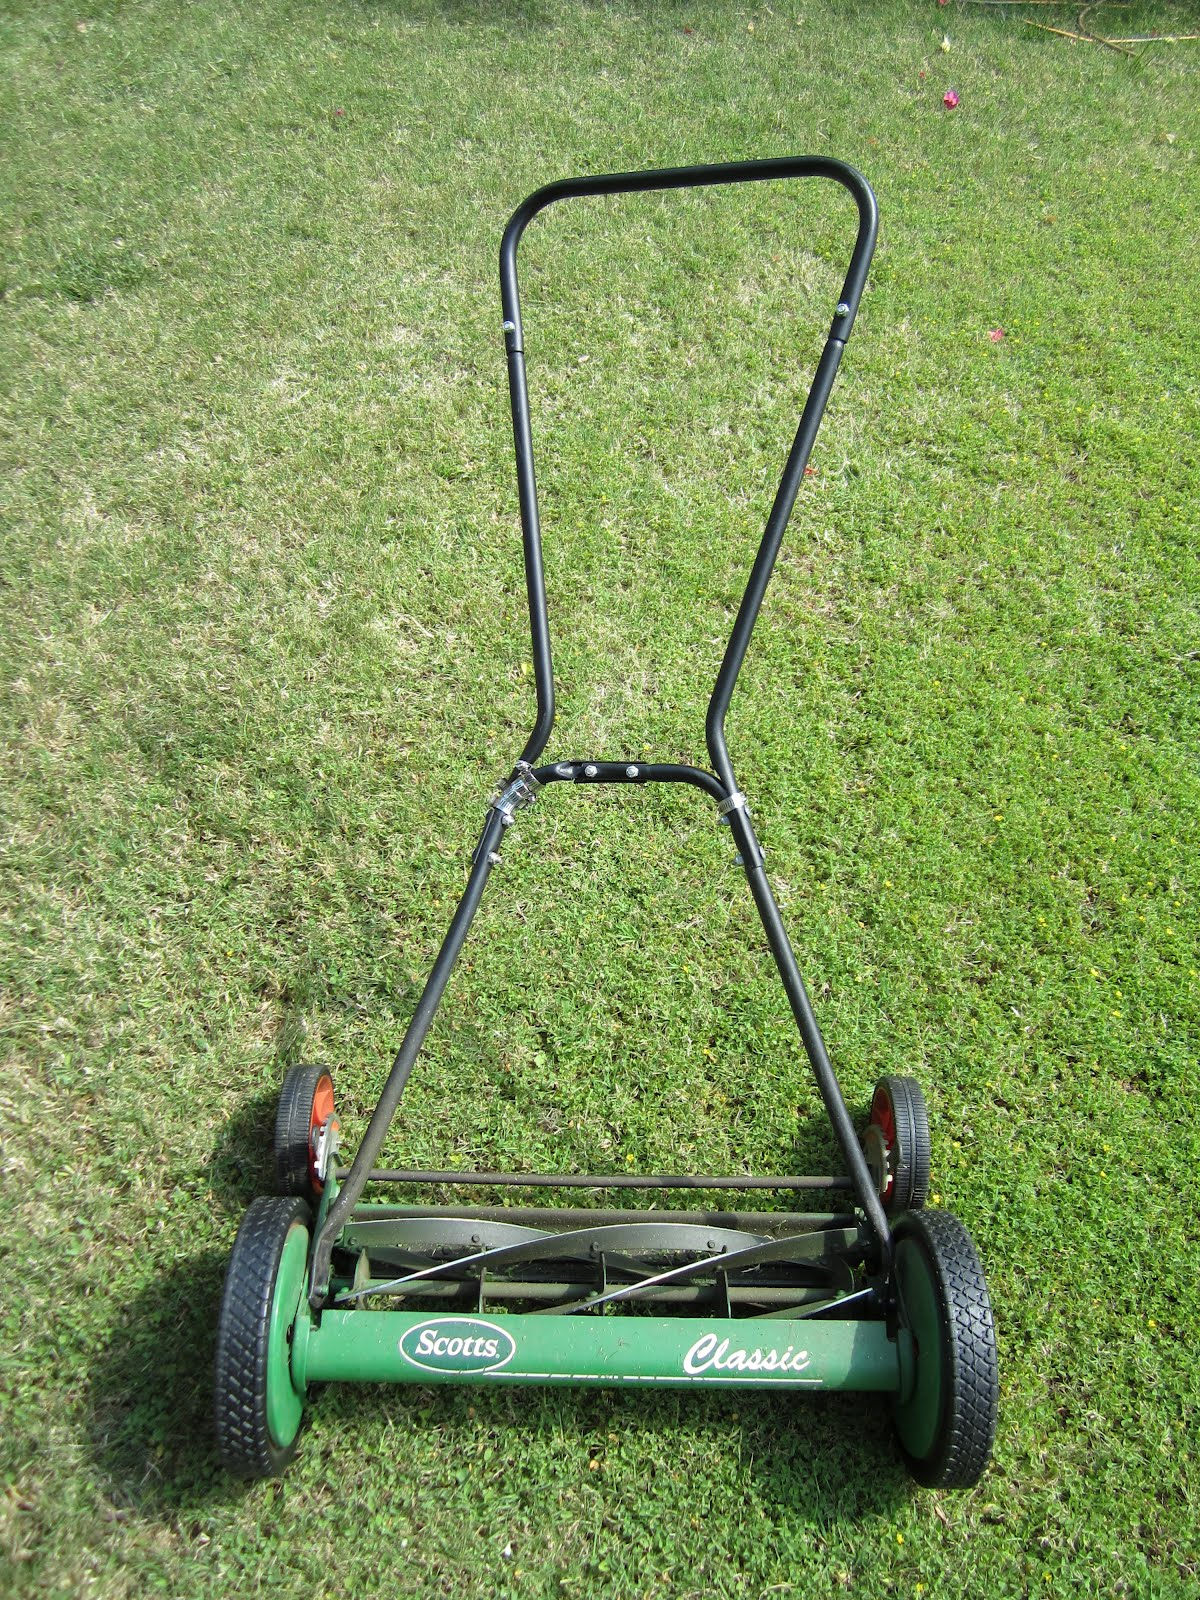 Scotts reel mower replacement parts